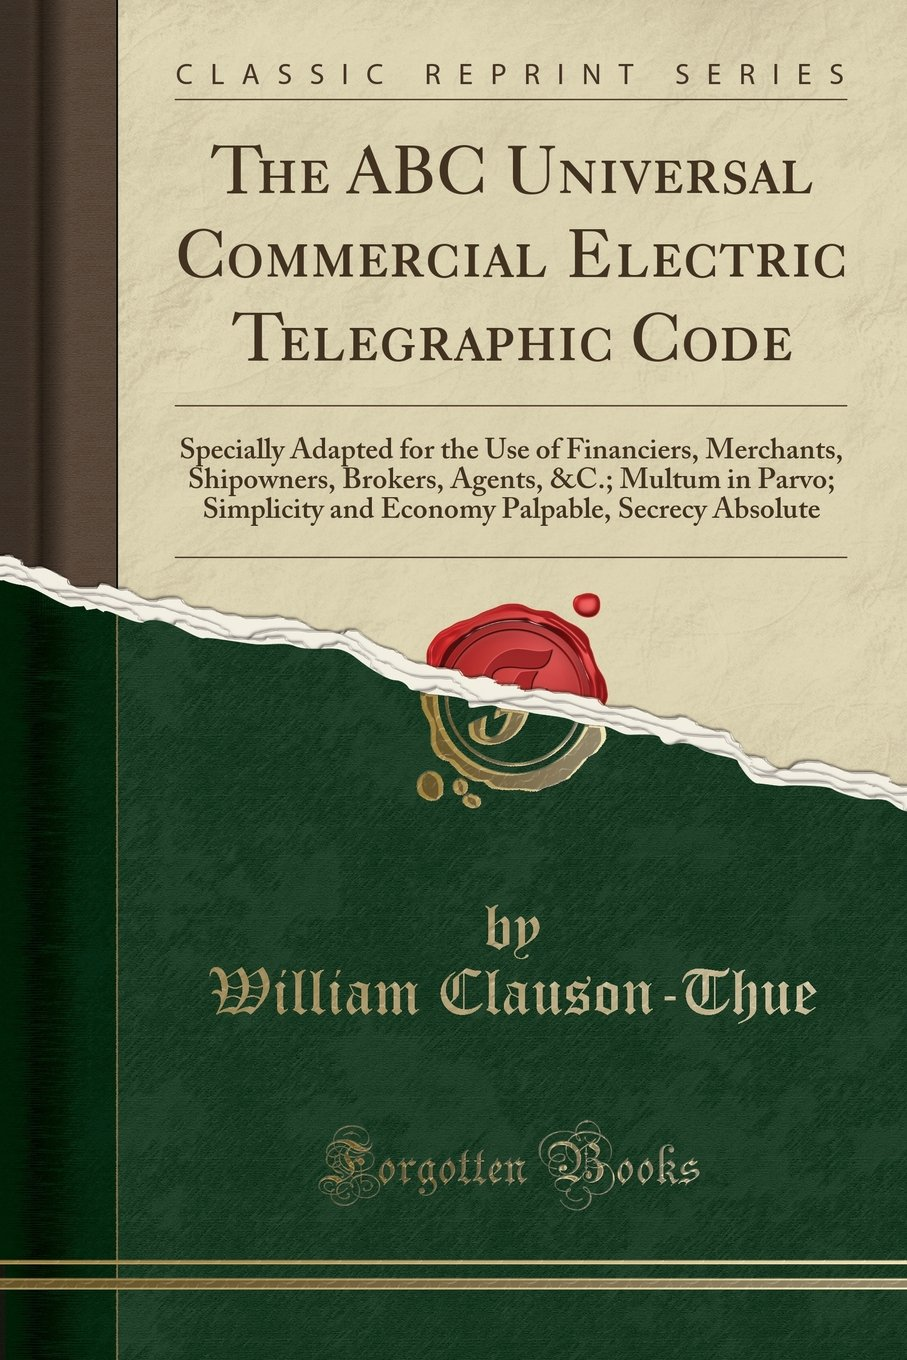 The ABC Universal Commercial Electric Telegraphic Code: Specially Adapted for the Use of Financiers, Merchants, Shipowners, Brokers, Agents, &C.; ... Palpable, Secrecy Absolute (Classic Reprint) pdf